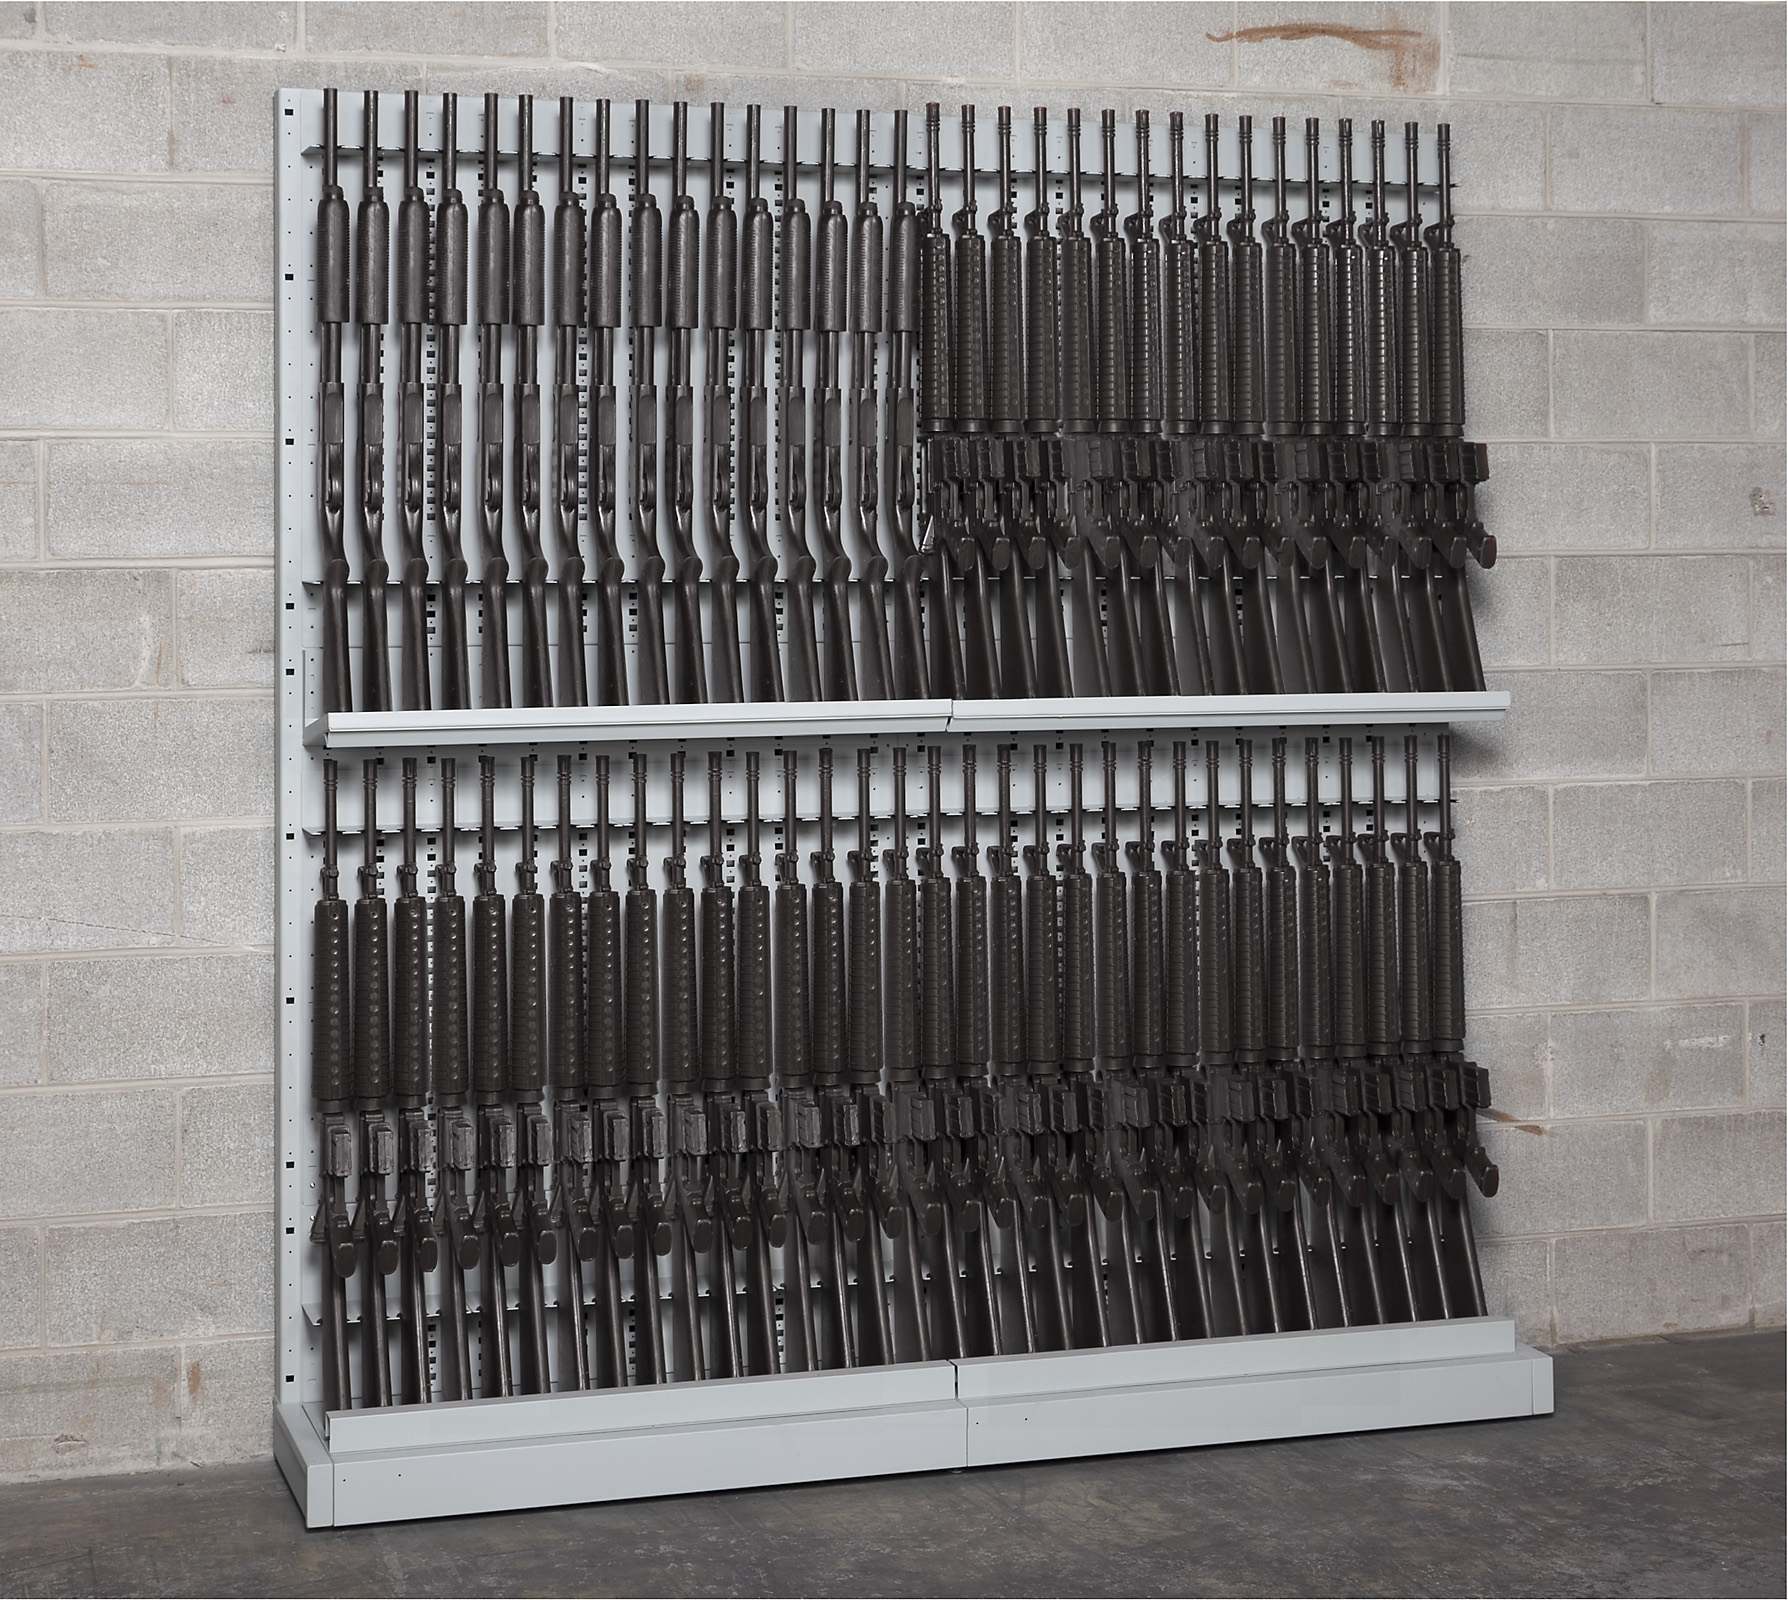 Single-Sided Expandable Weapon Rack with High-Density Storage Components